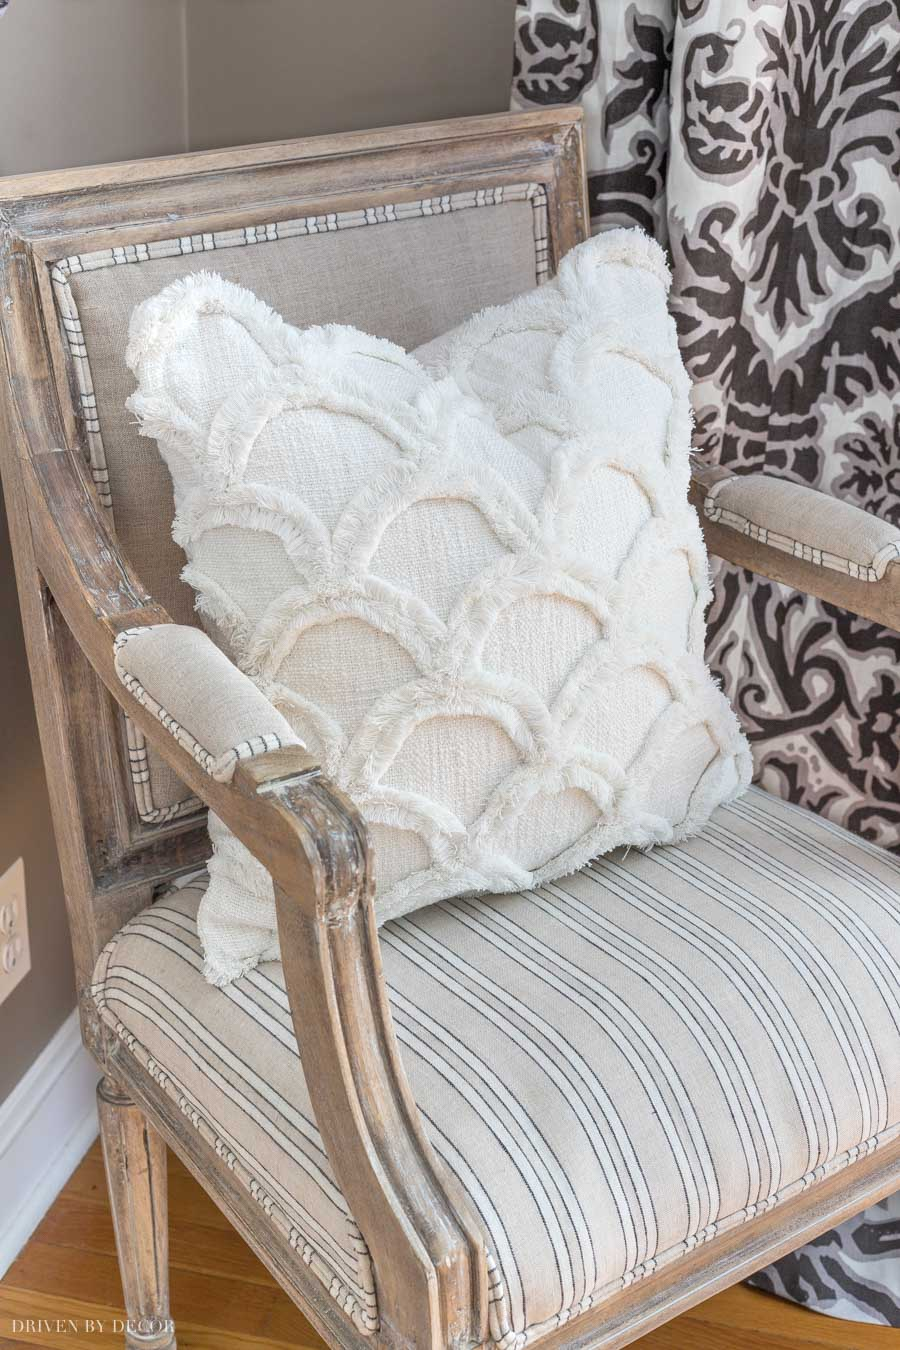 SUCH a cute scalloped white pillow! Love the texture and that it works with everything!